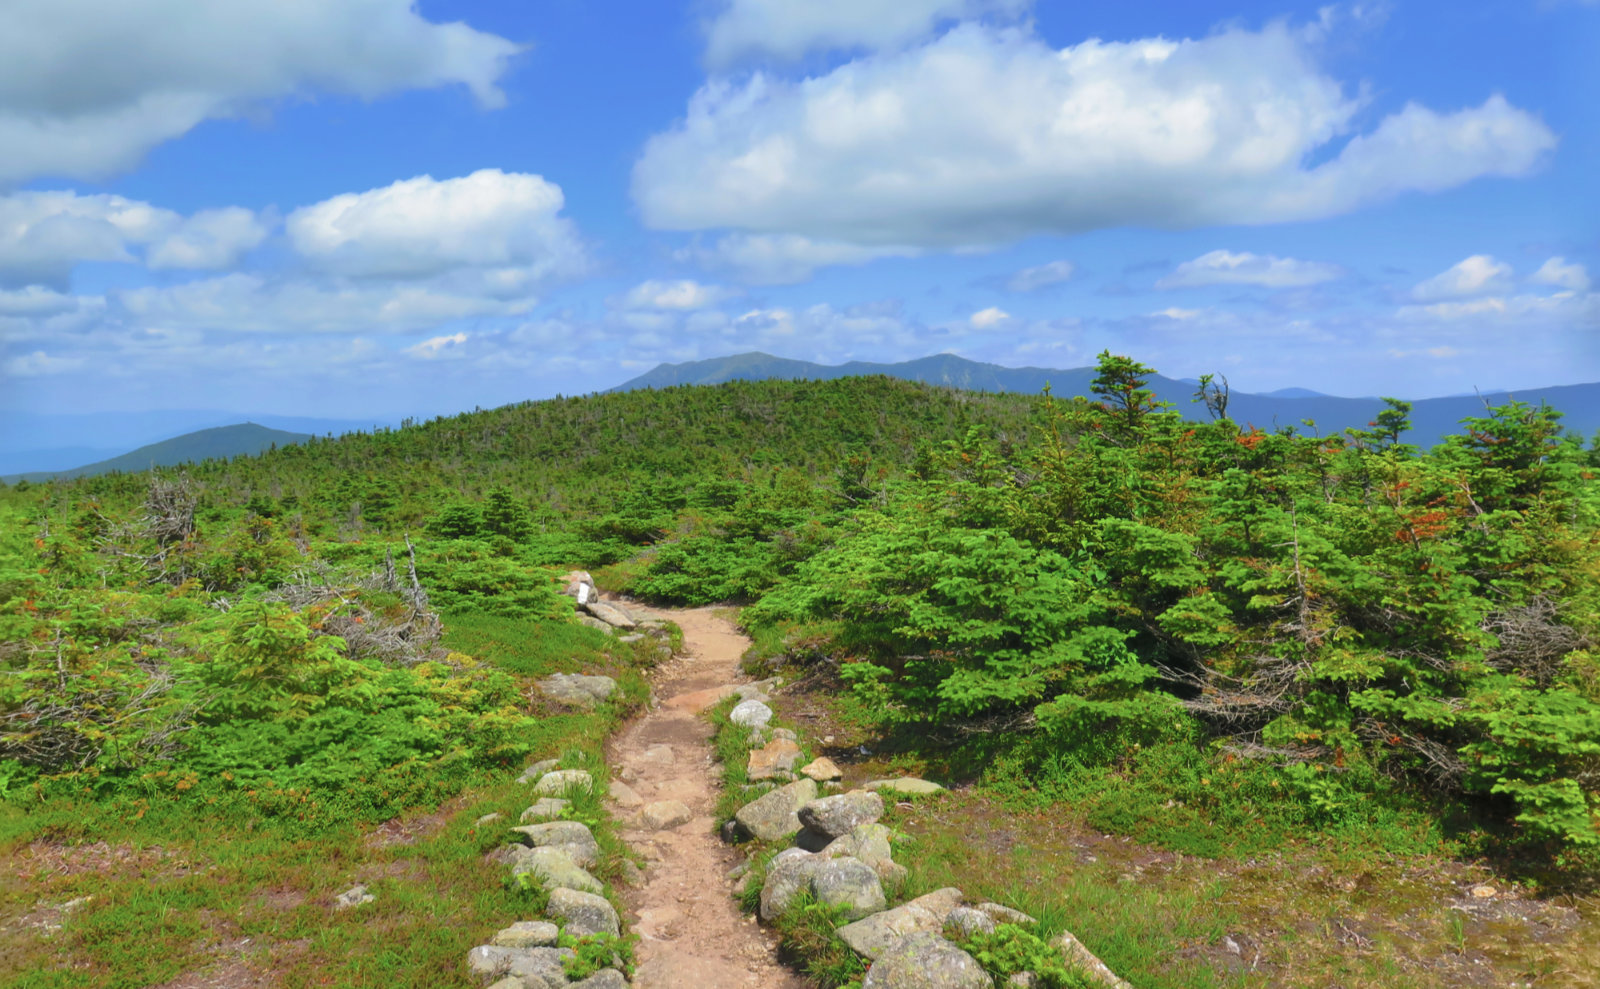 Kinsman_Franconia_Ridge_From_AT_20190713